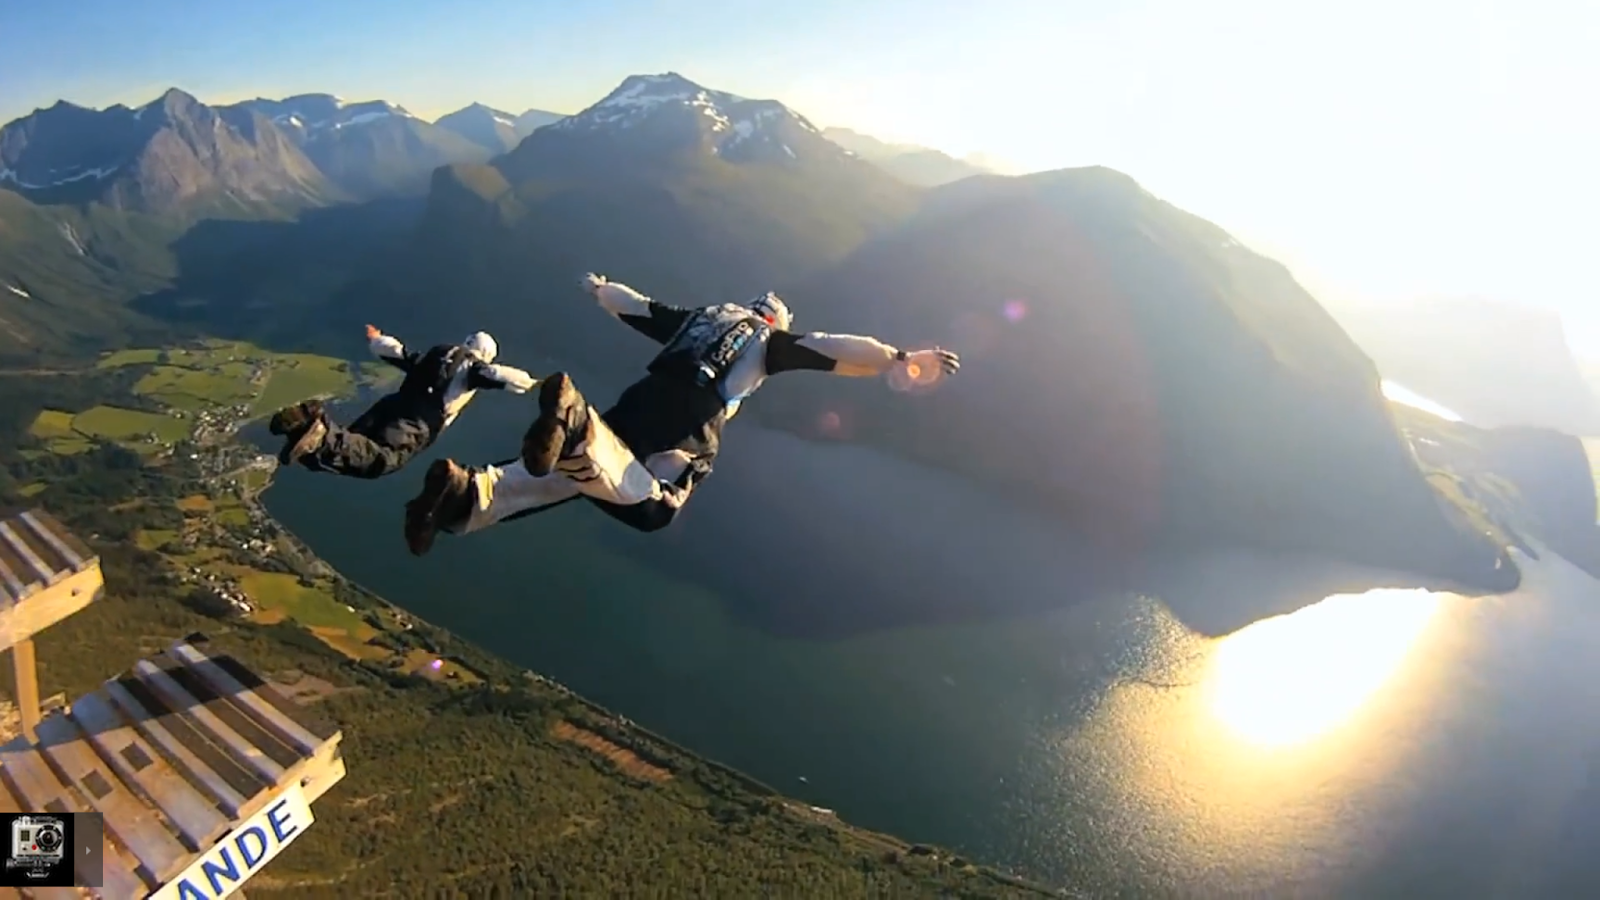 Wingsuit Wallpaper - WallpaperSafari